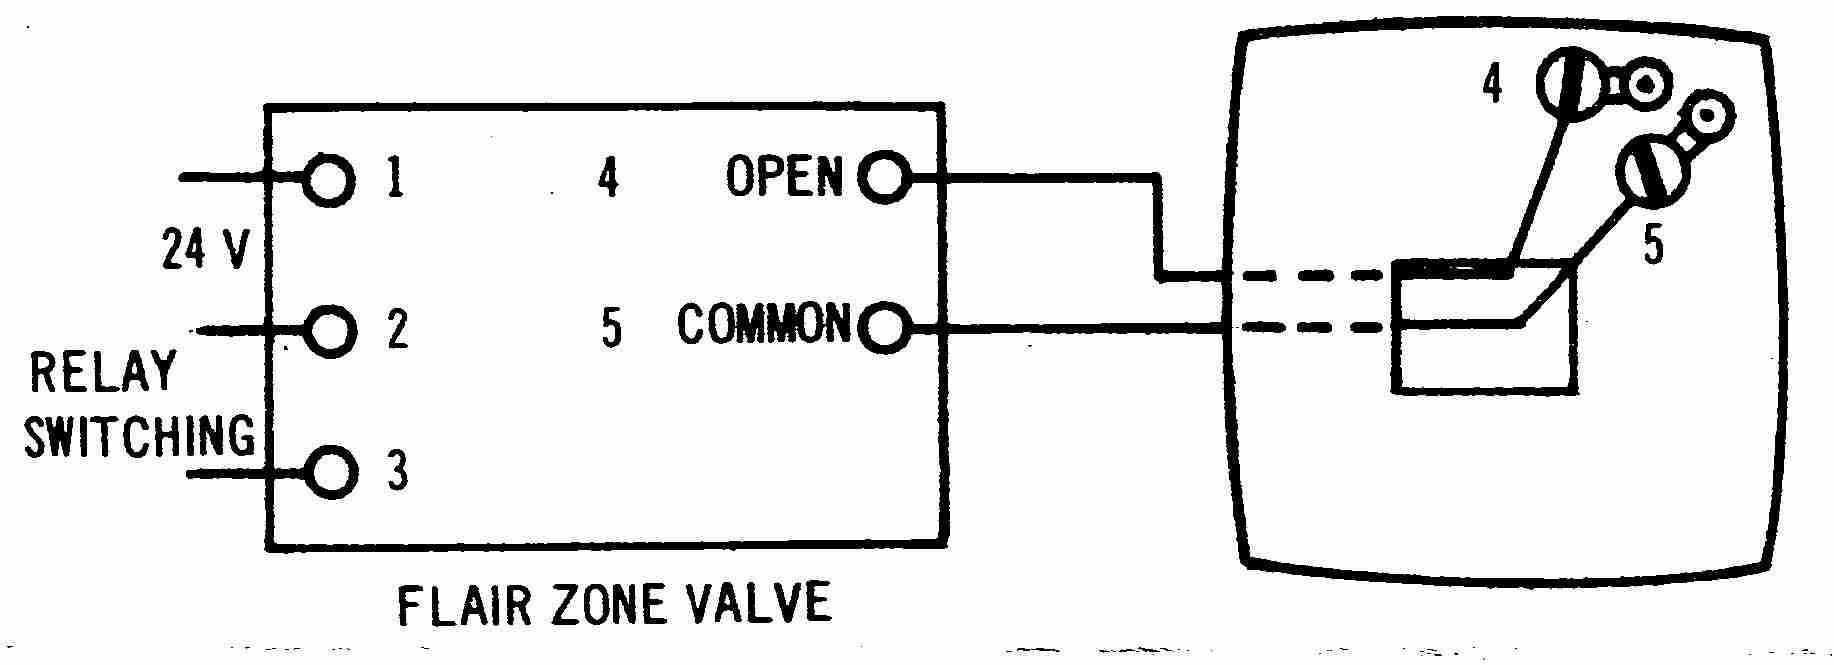 room thermostat wiring diagrams for hvac systems flair 2 wire thermosat wiring diagram